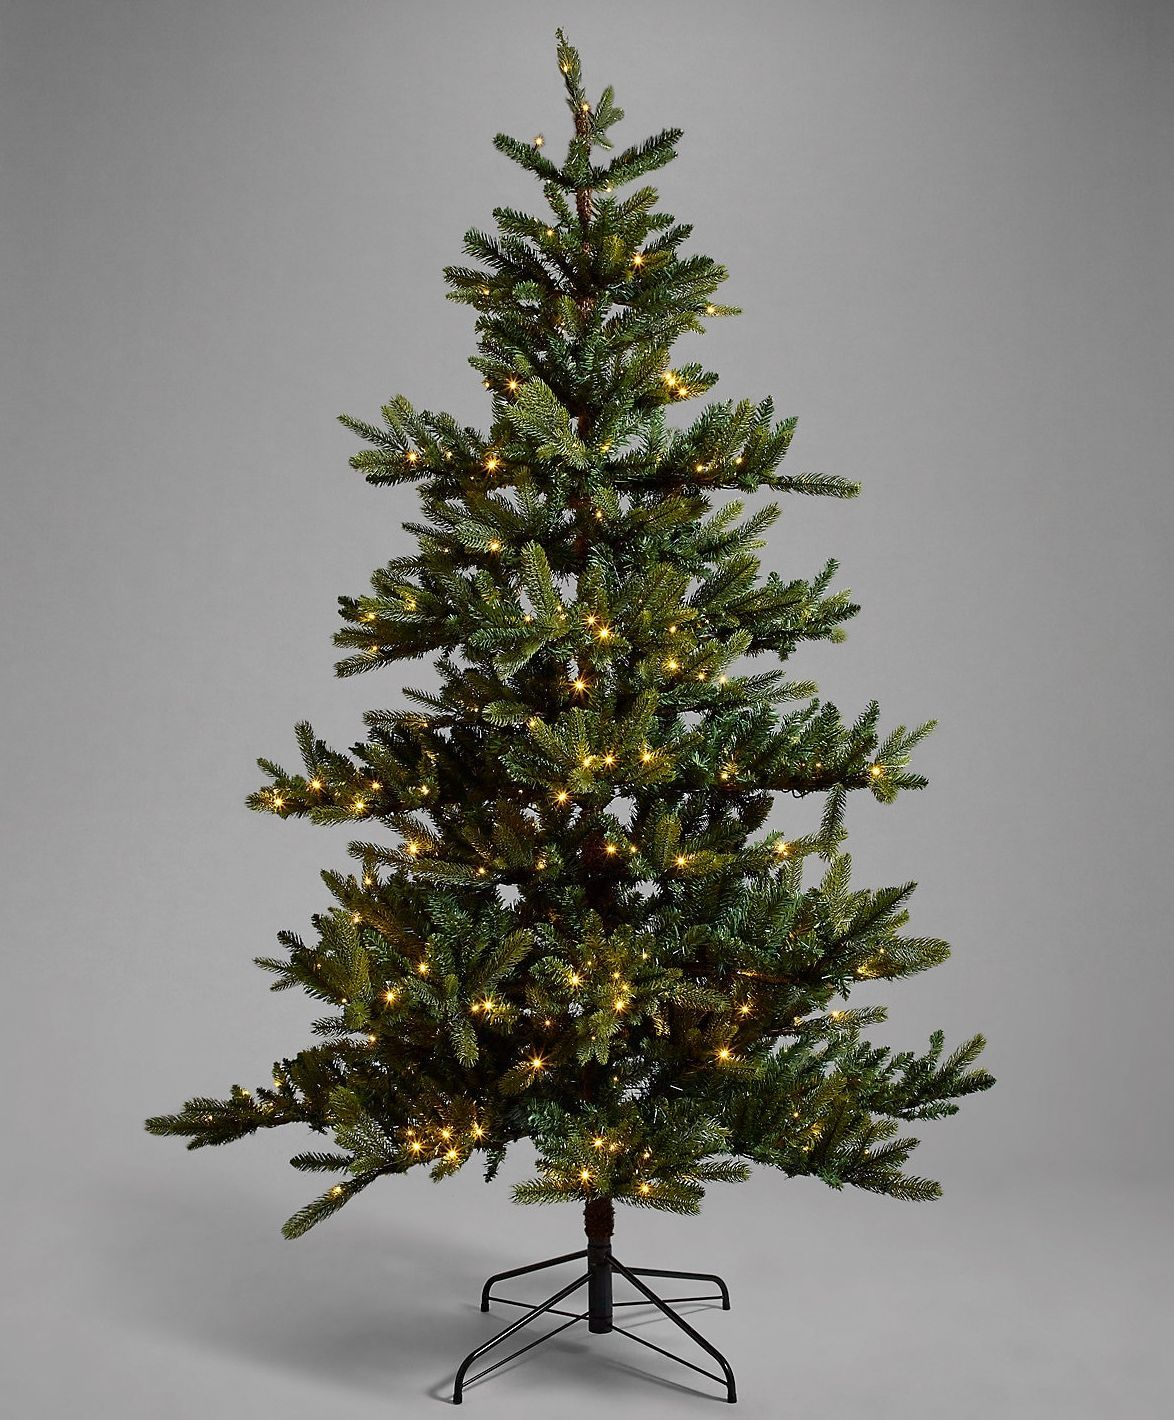 North Star Tree Topper, £26 Christmas tree, Noble fir